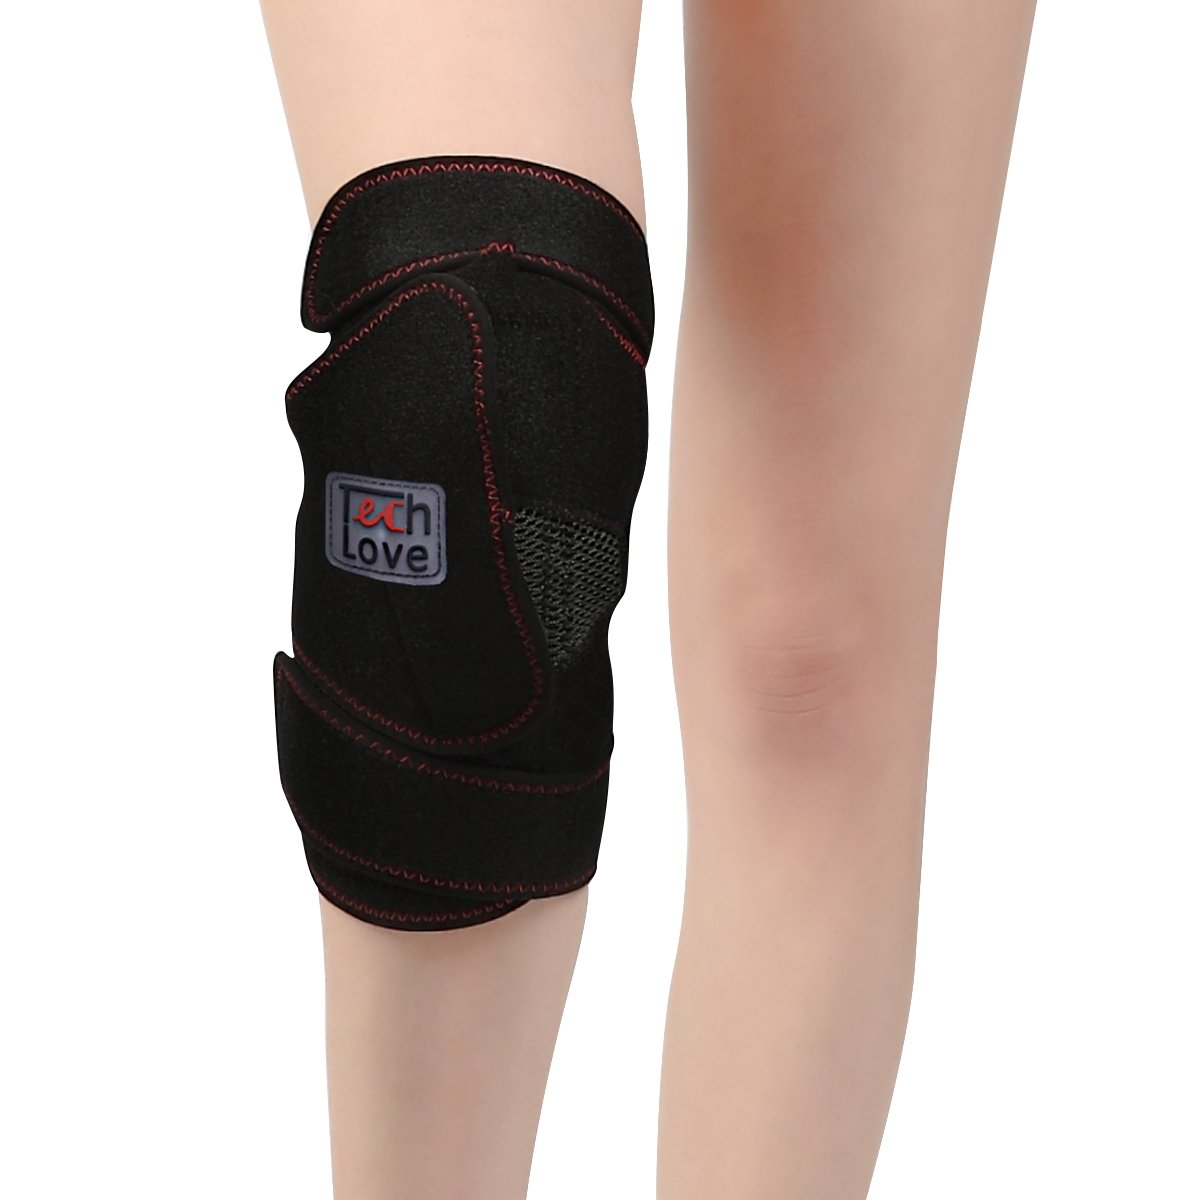 Heated Knee Brace Heat Therapy Patella Wrap by Techlove with Moxa Bag for Men and Women Relieve ACL, MCL, PCL, Meniscus Tear, Arthritis and Tendonitis Pain (Black)